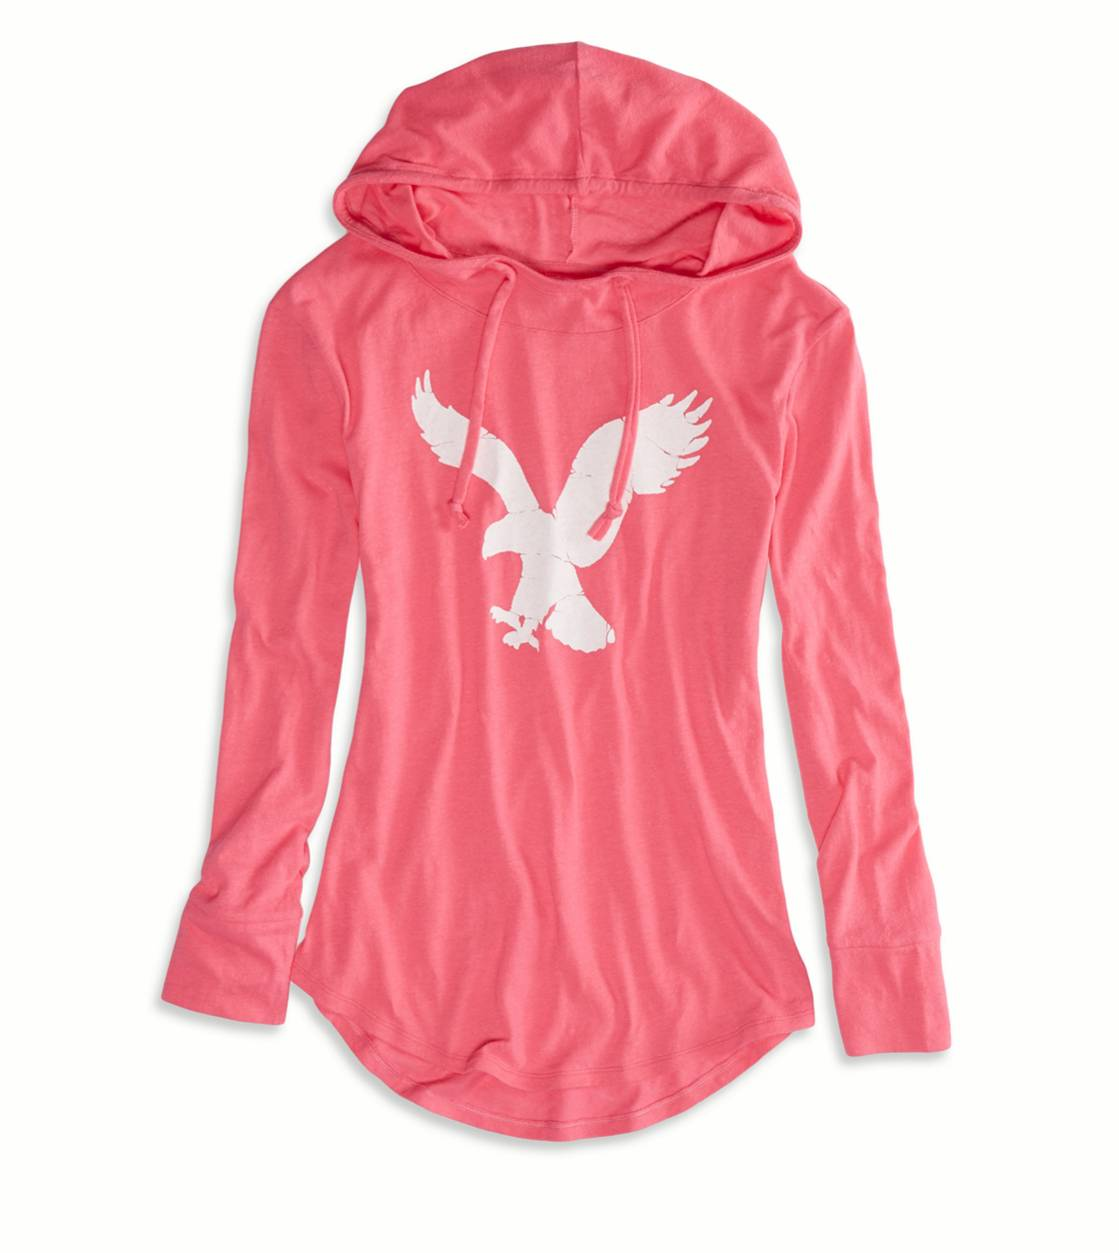 Voltage Pink AEO Factory Graphic Hoodie T-Shirt